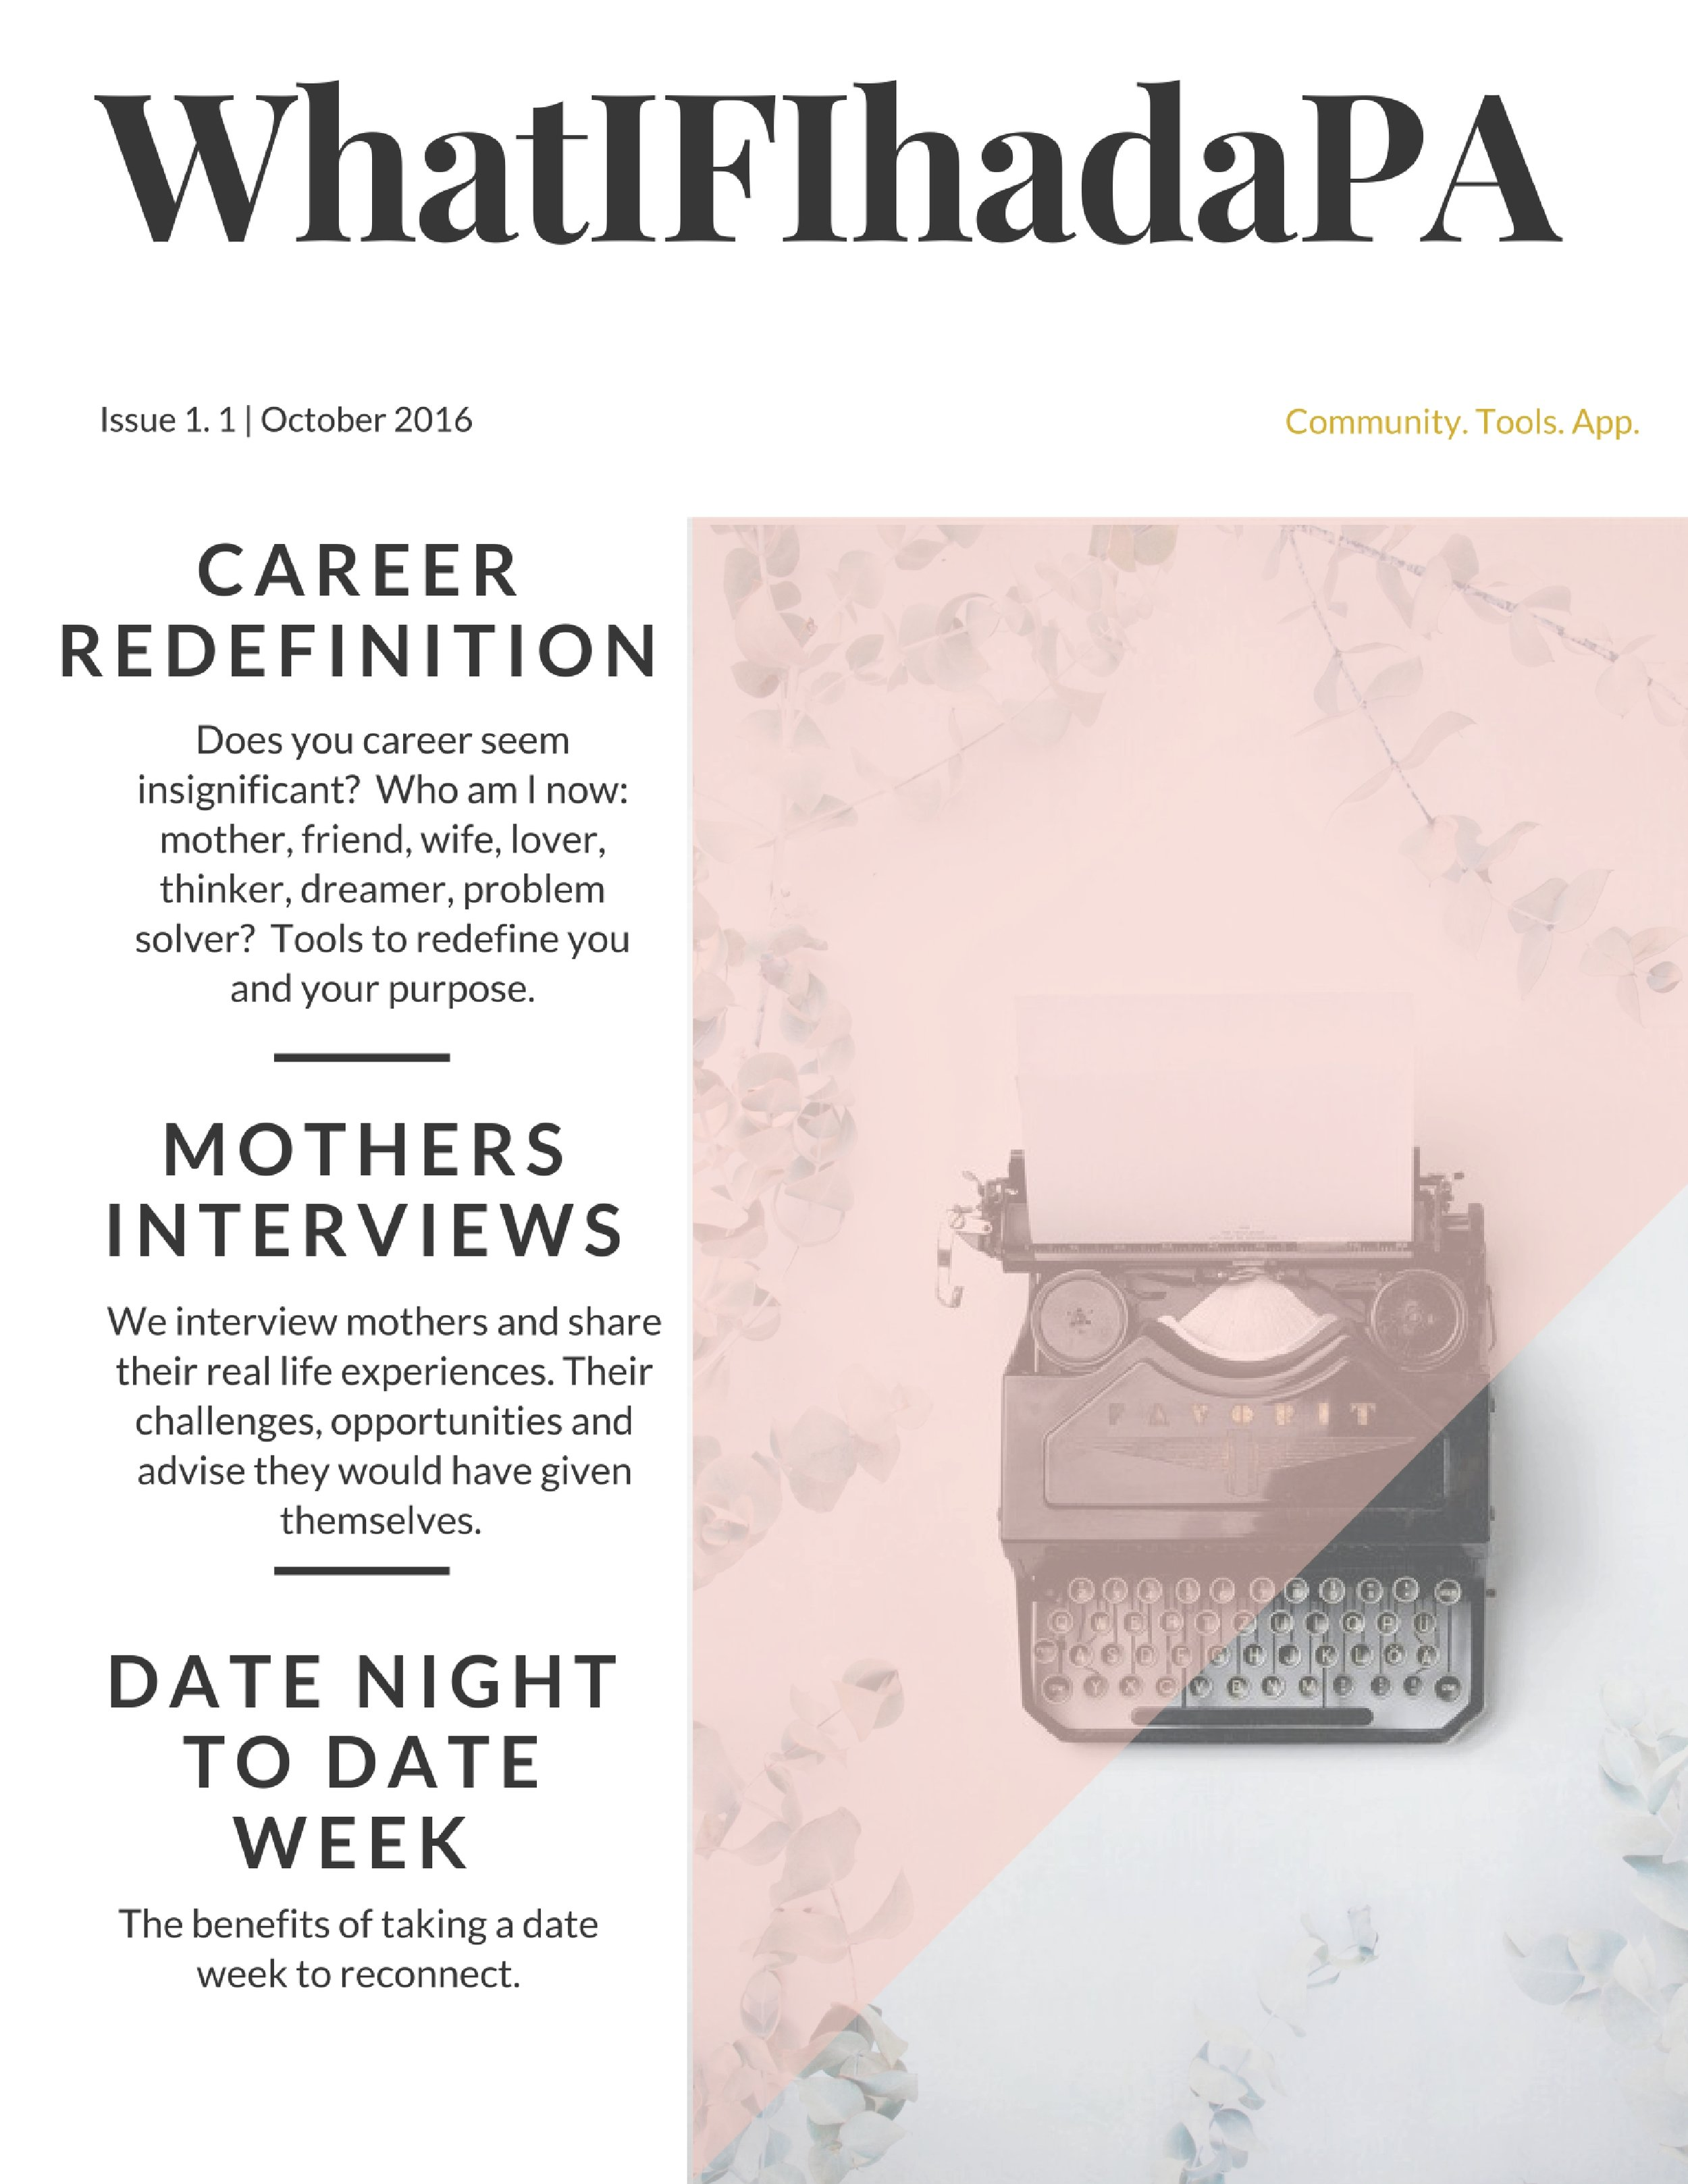 Autumn 2016    Redefining Yourself - Career, Mothers Interviews, How to Move from Date Night to Date Week!